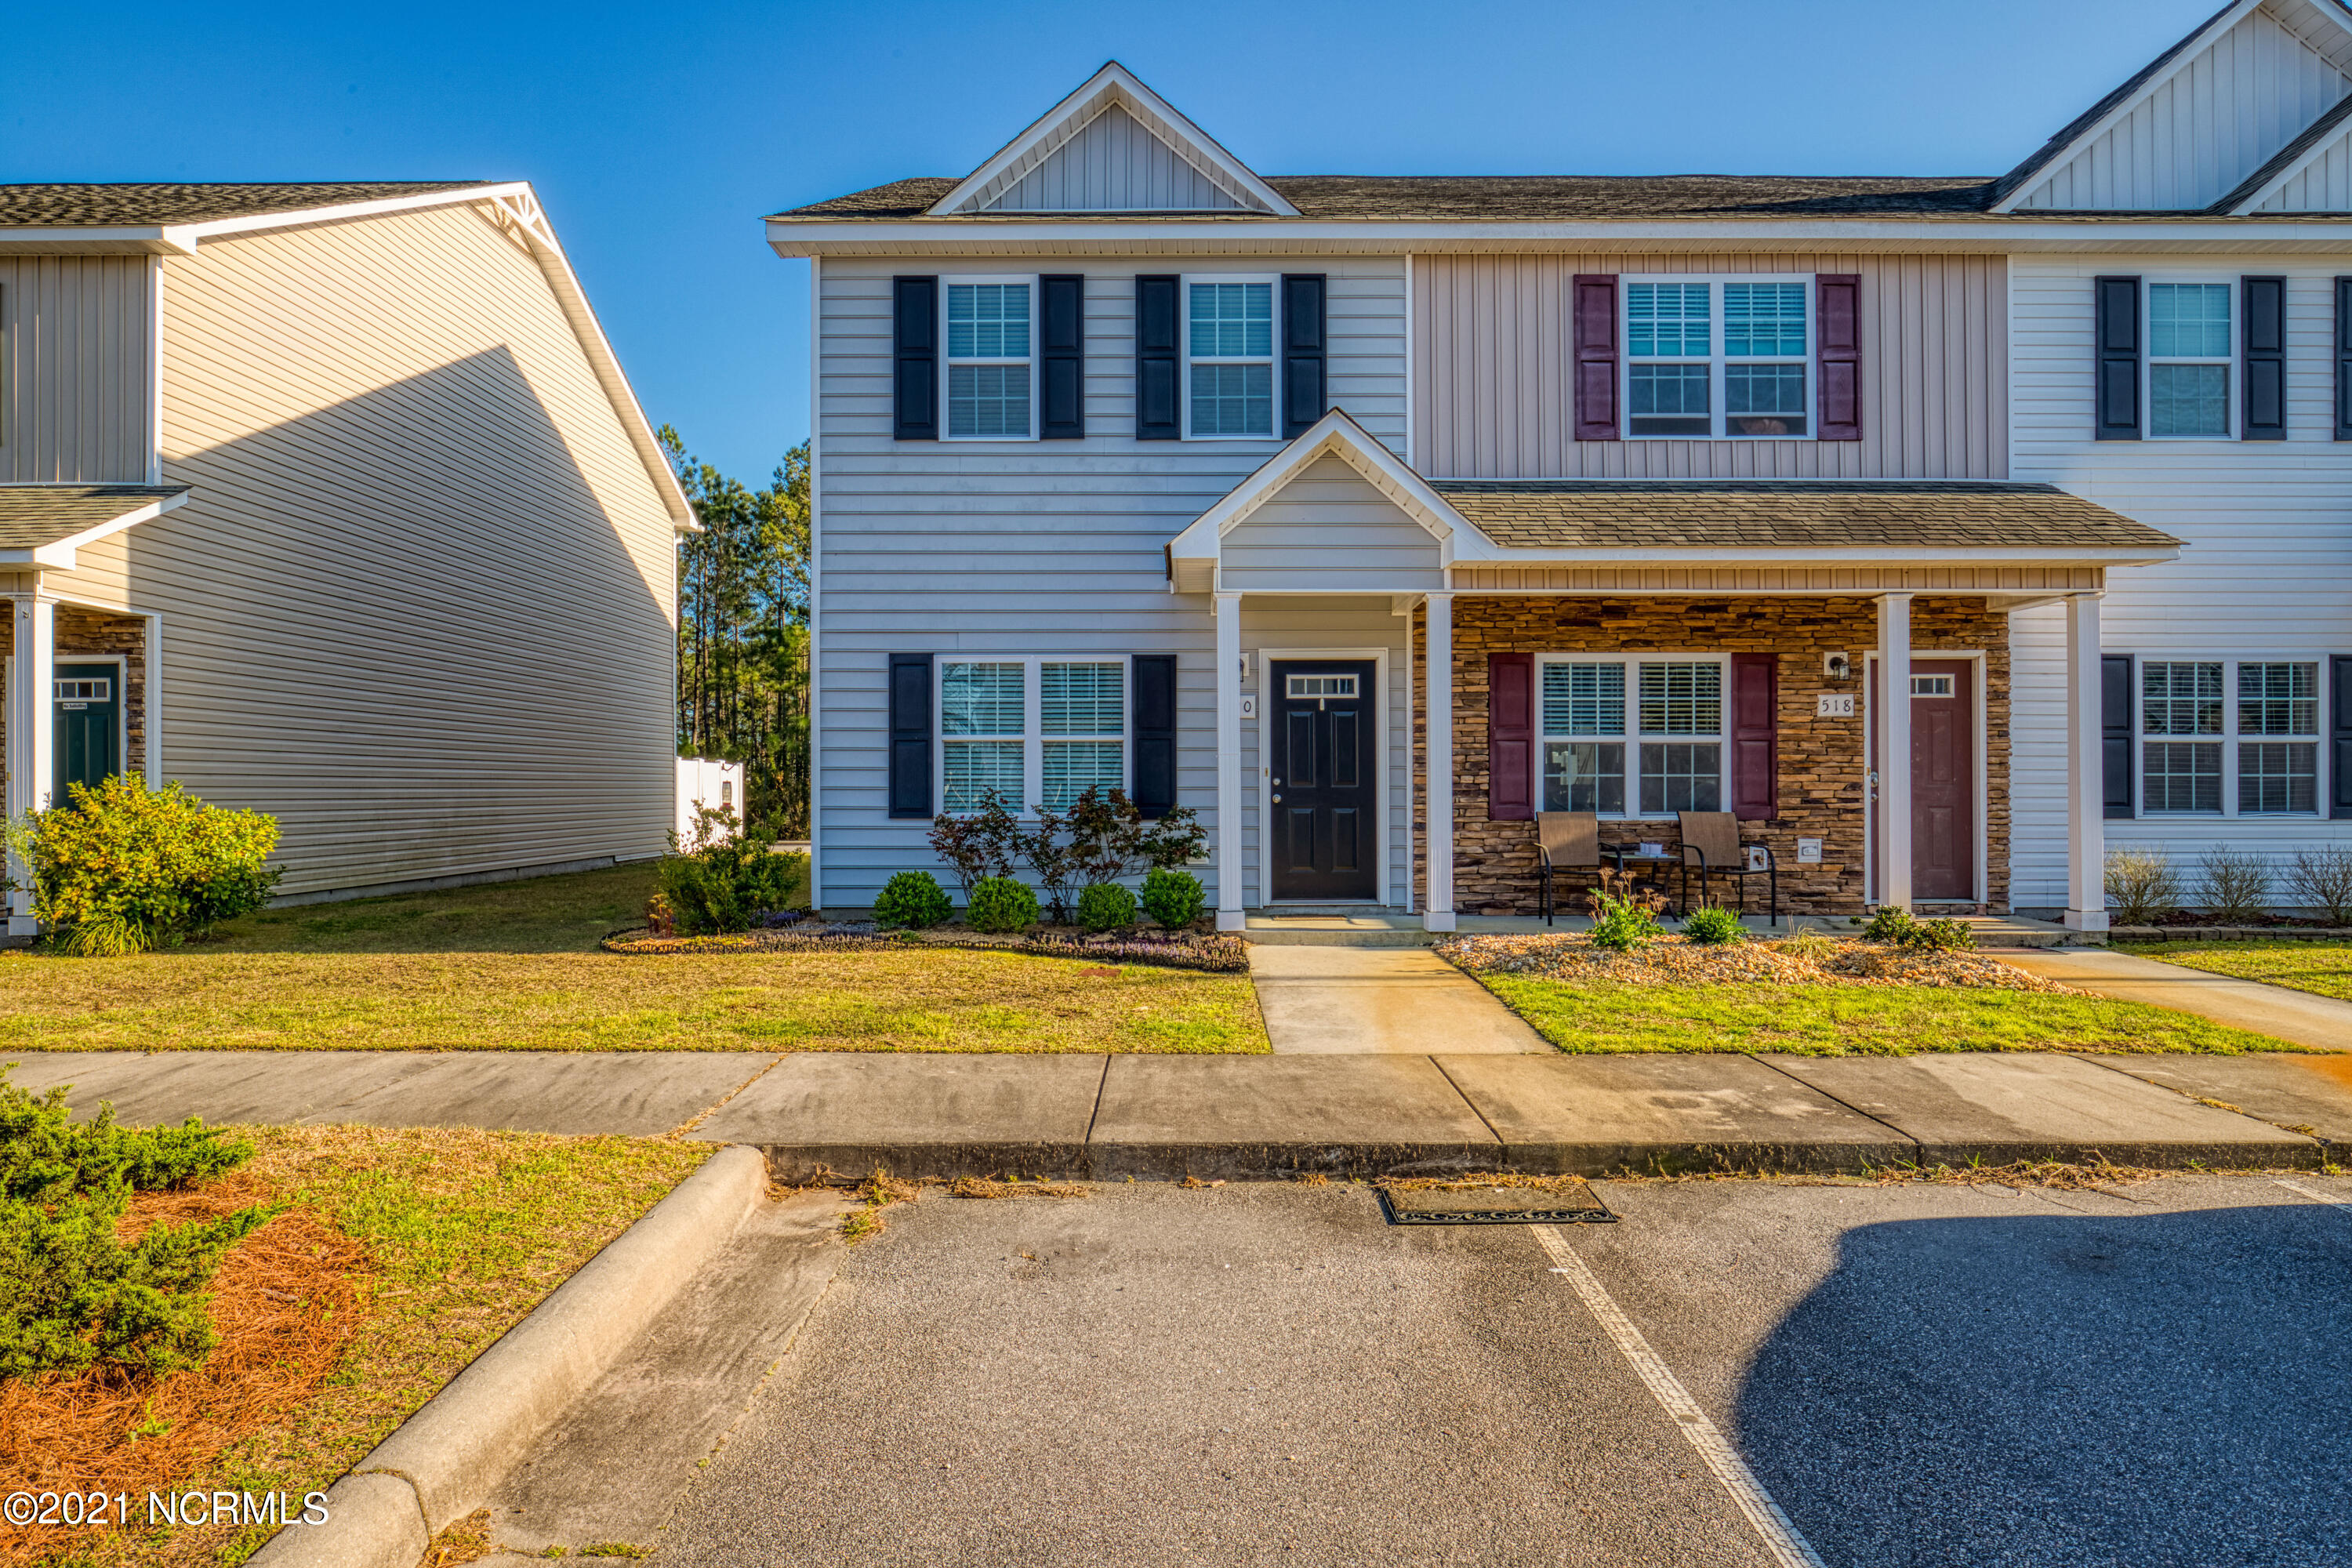 Beautiful 2 story 2 bedroom 2.5 bathroom townhouse located in the Oyster Landing Townhomes subdivision. Townhouse is near the beach, local dining, and there is a community pool! Come check it out, it won't last long!